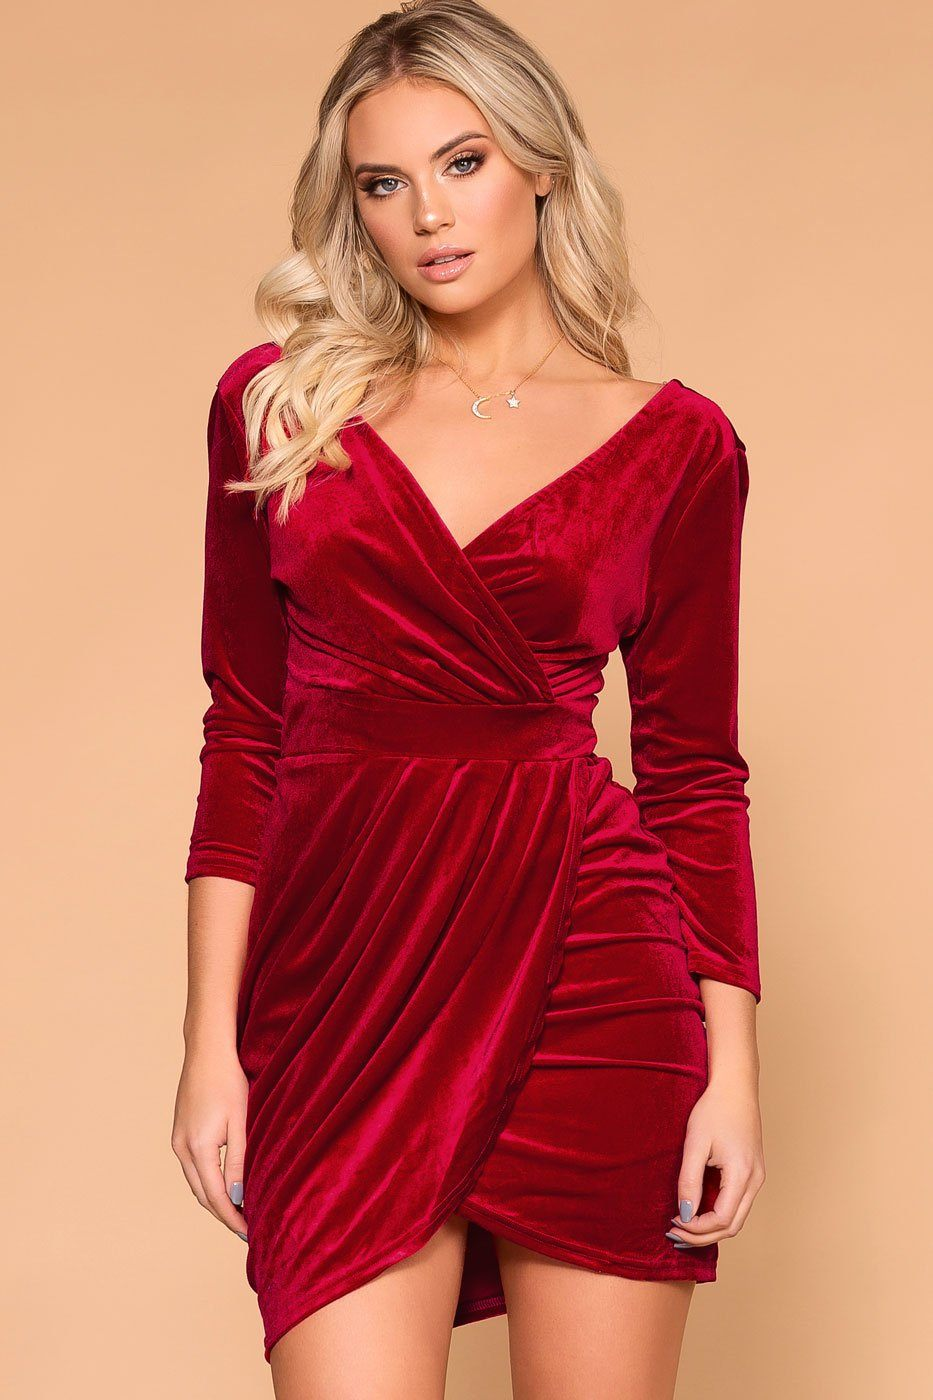 a64cd806dc7b Lady Luck Red Velvet Wrap Mini Dress